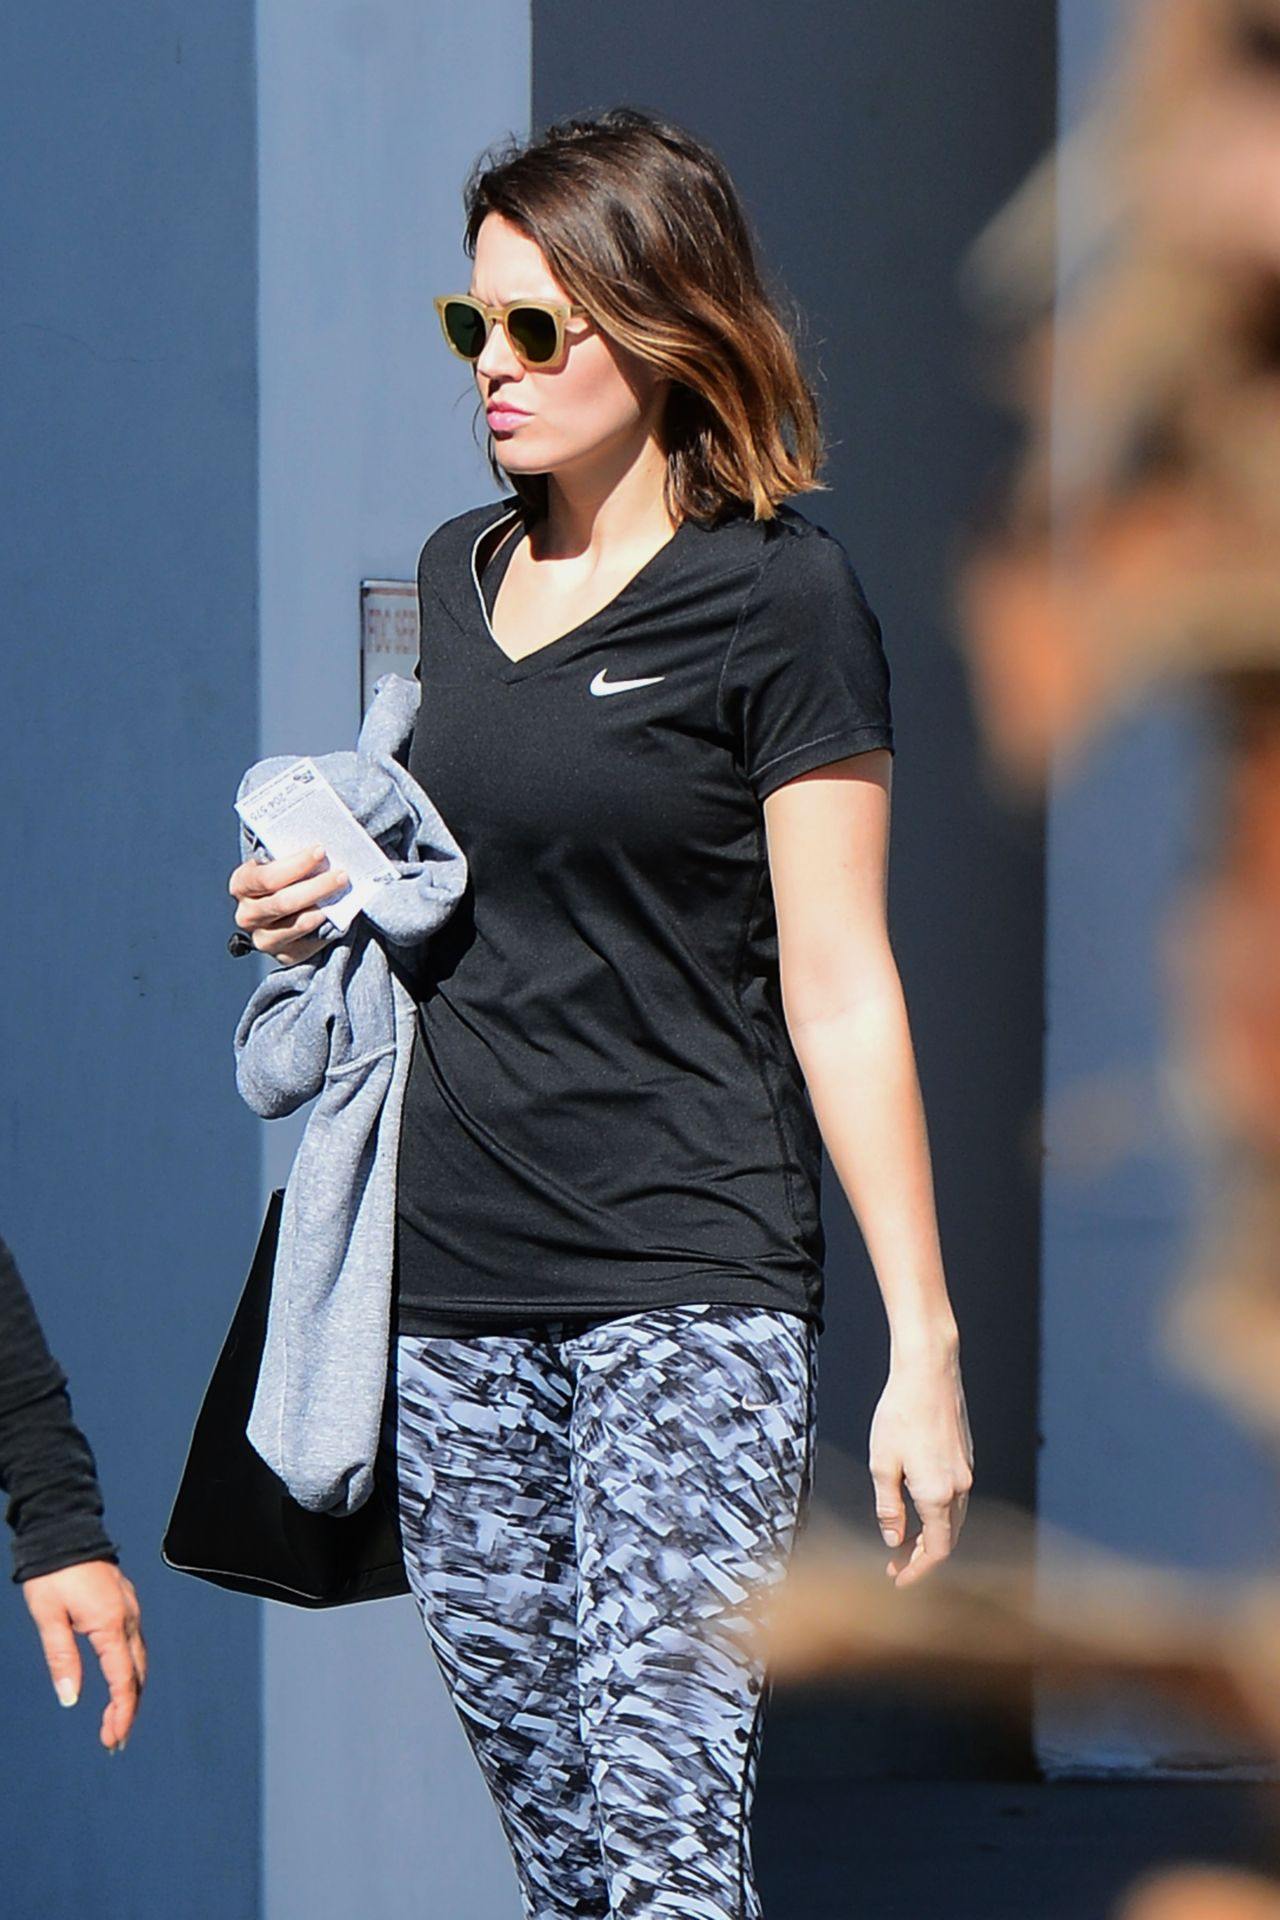 Mandy Moore Street Style - Leaves The Gym in Los Angeles, January 2015